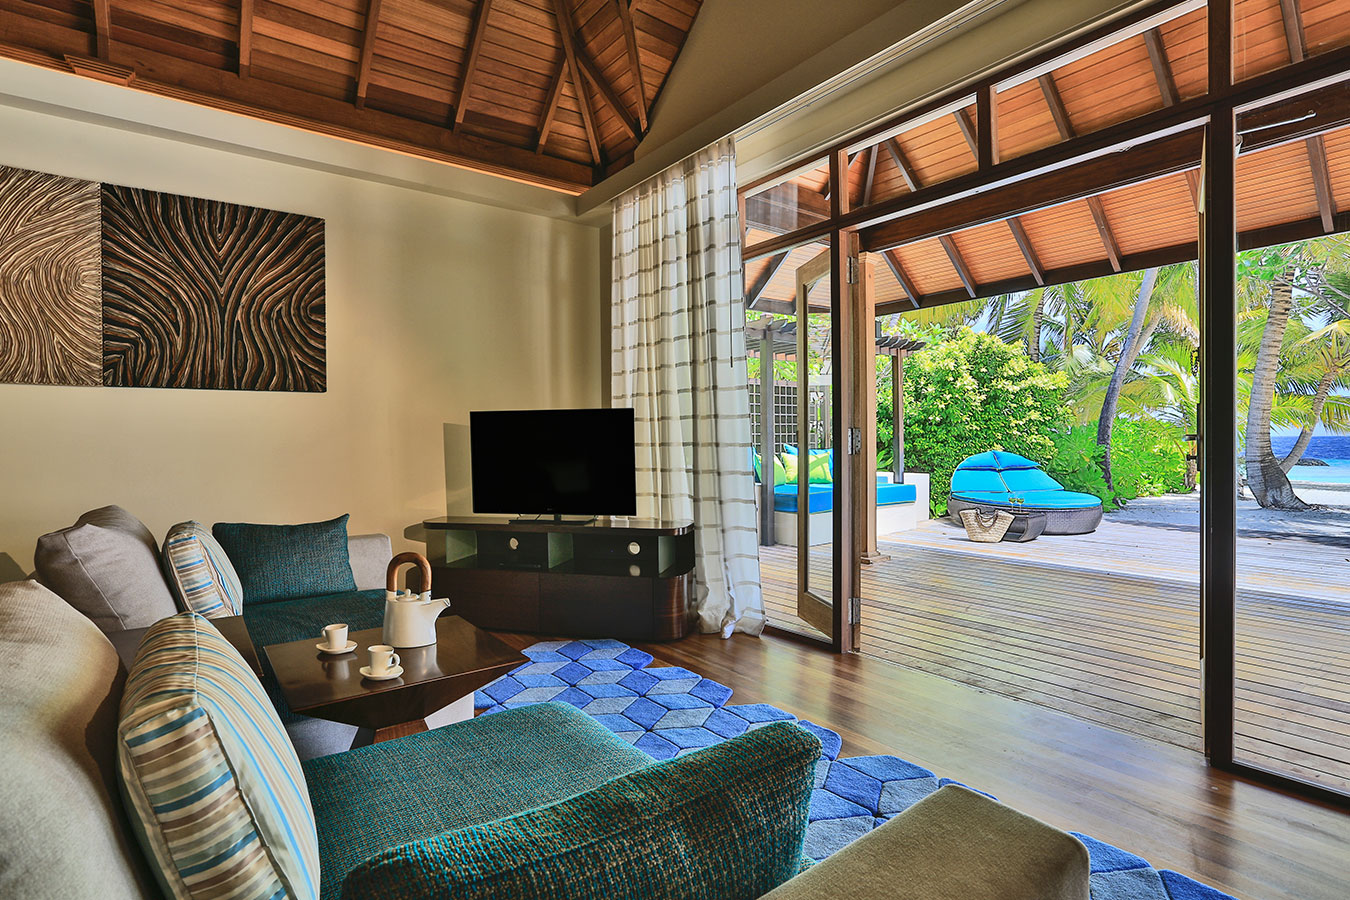 Kurumba Maldives - Royal Residence Bedroom View Image - Maldives Resorts Pool Villa